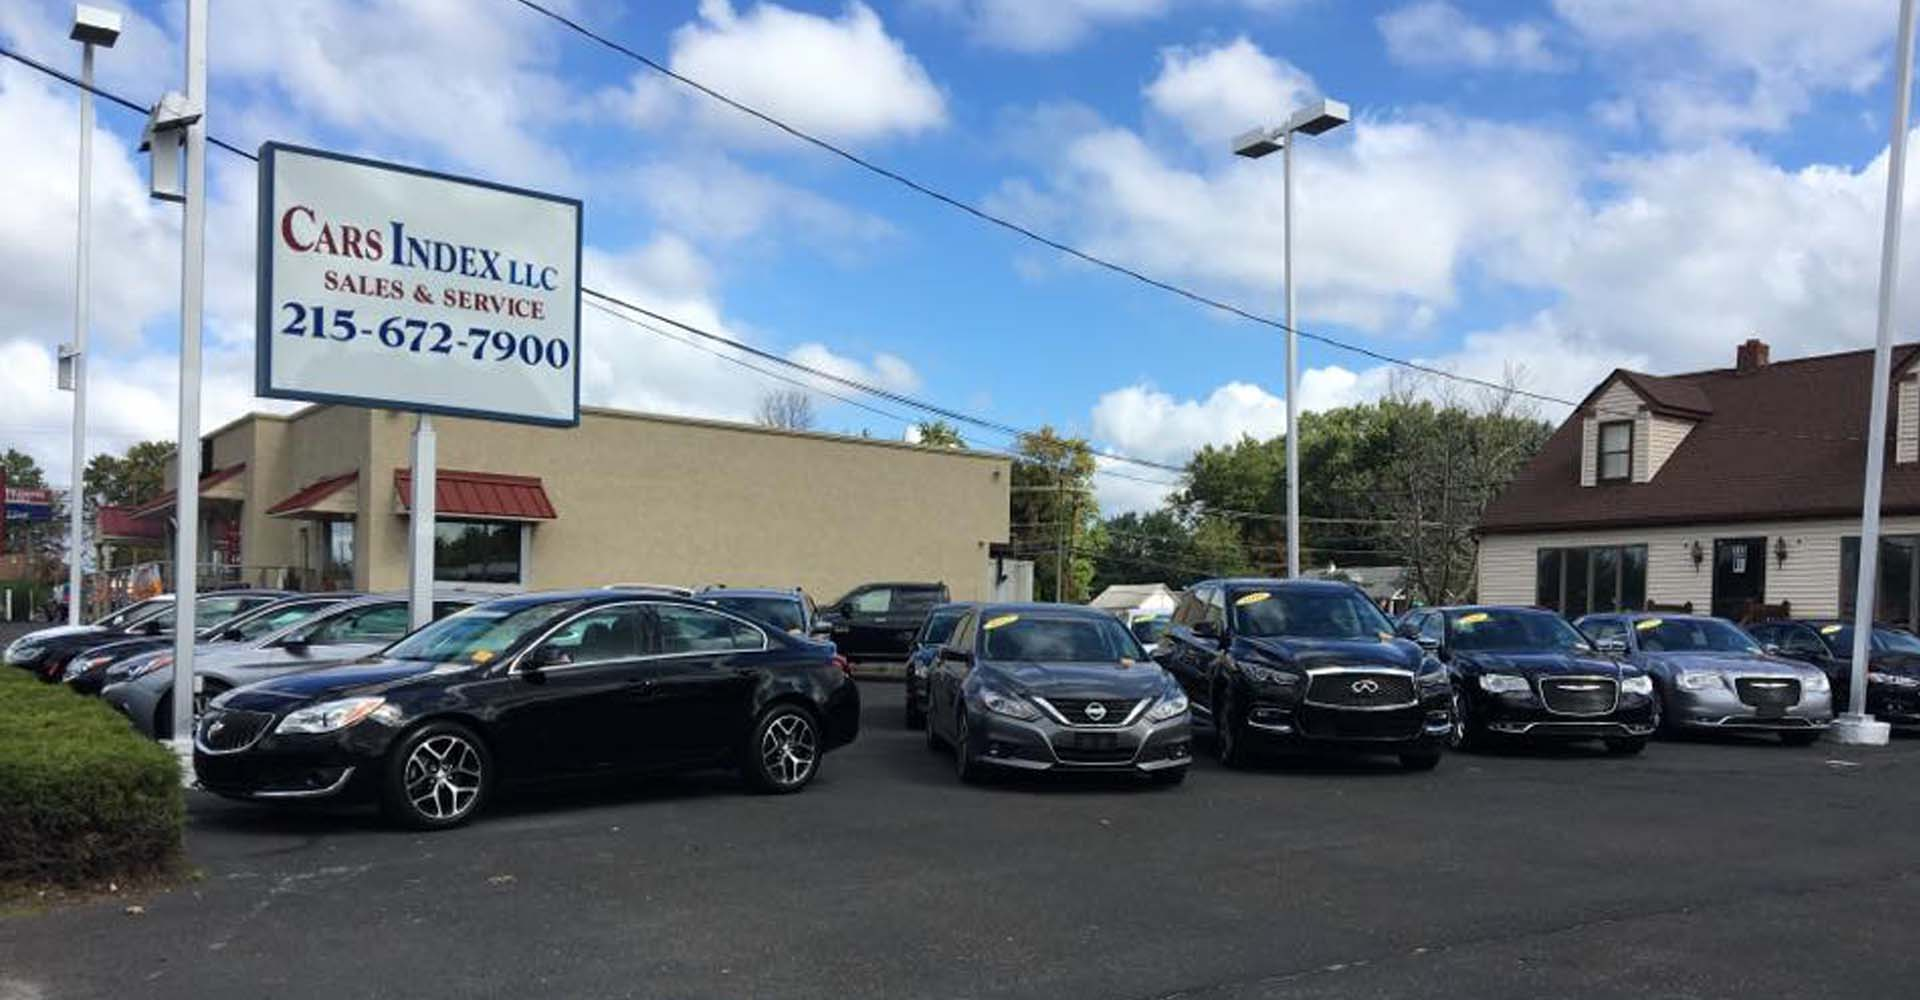 used car dealers in oakmont pa | used cars